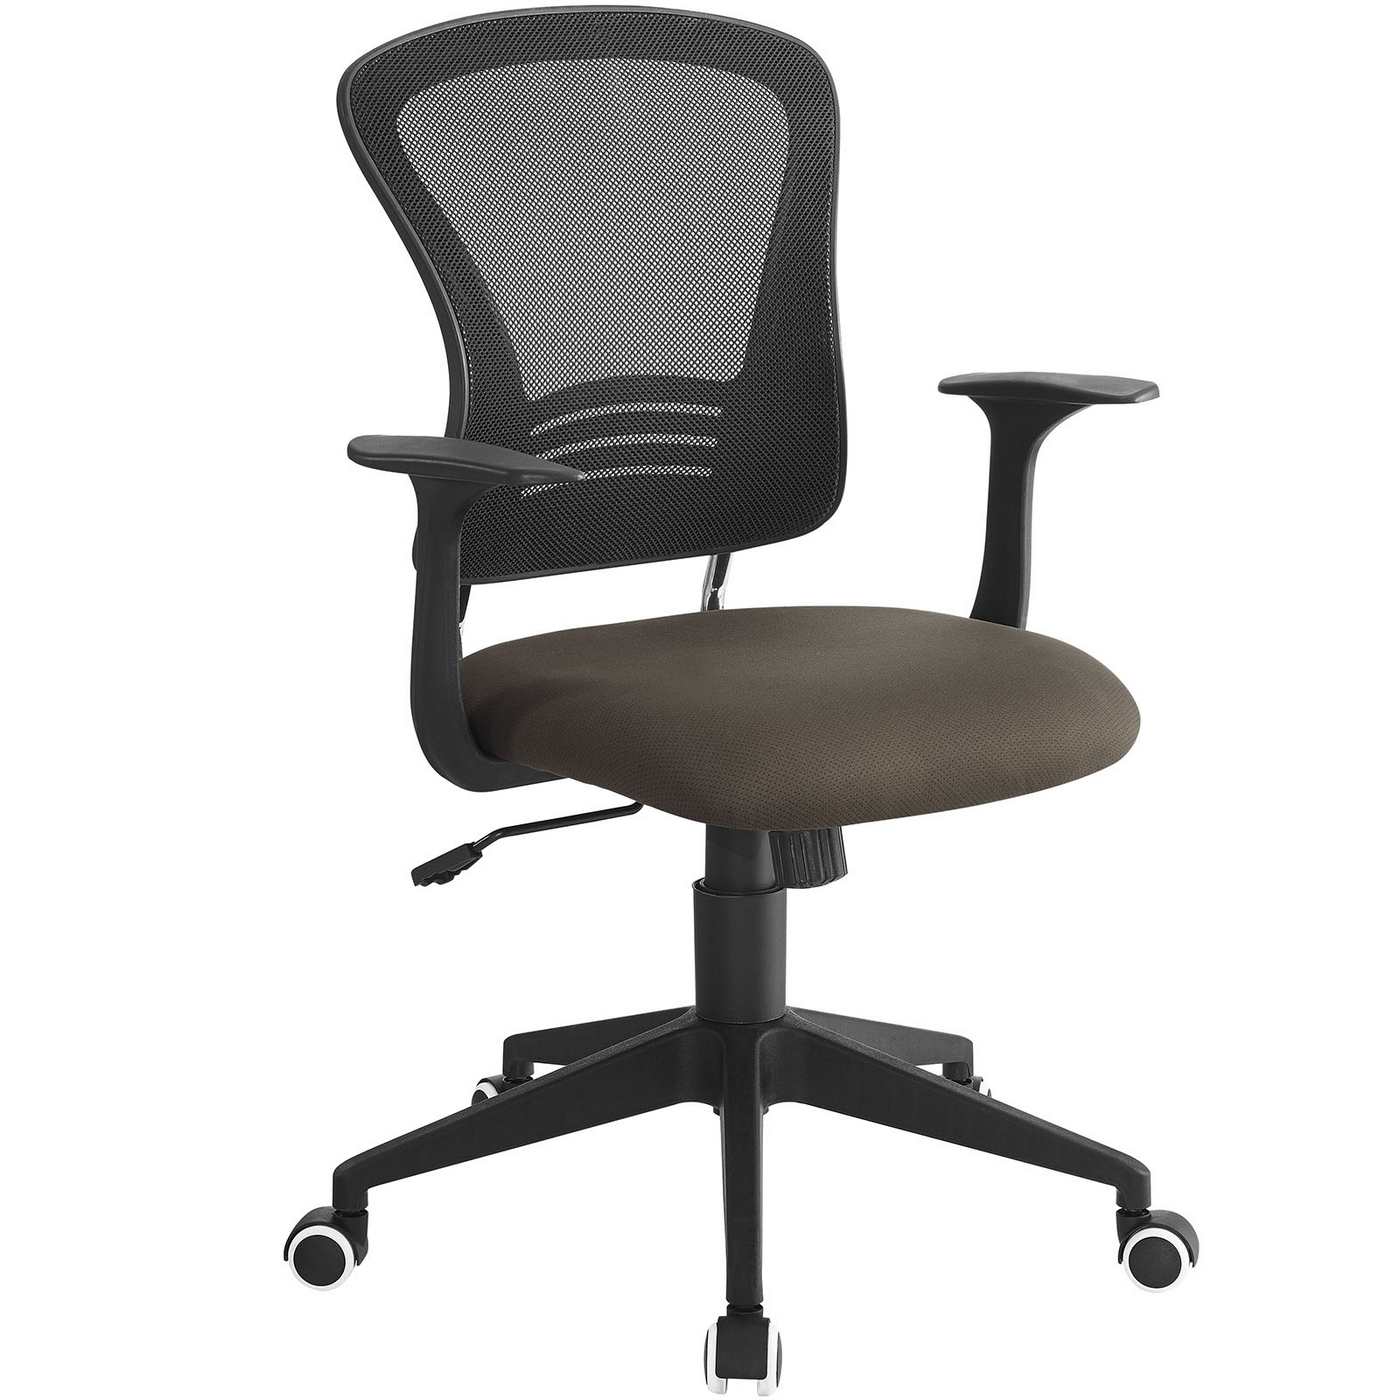 chair back support swivel for two poise modern ergonomic mesh office with lumbar